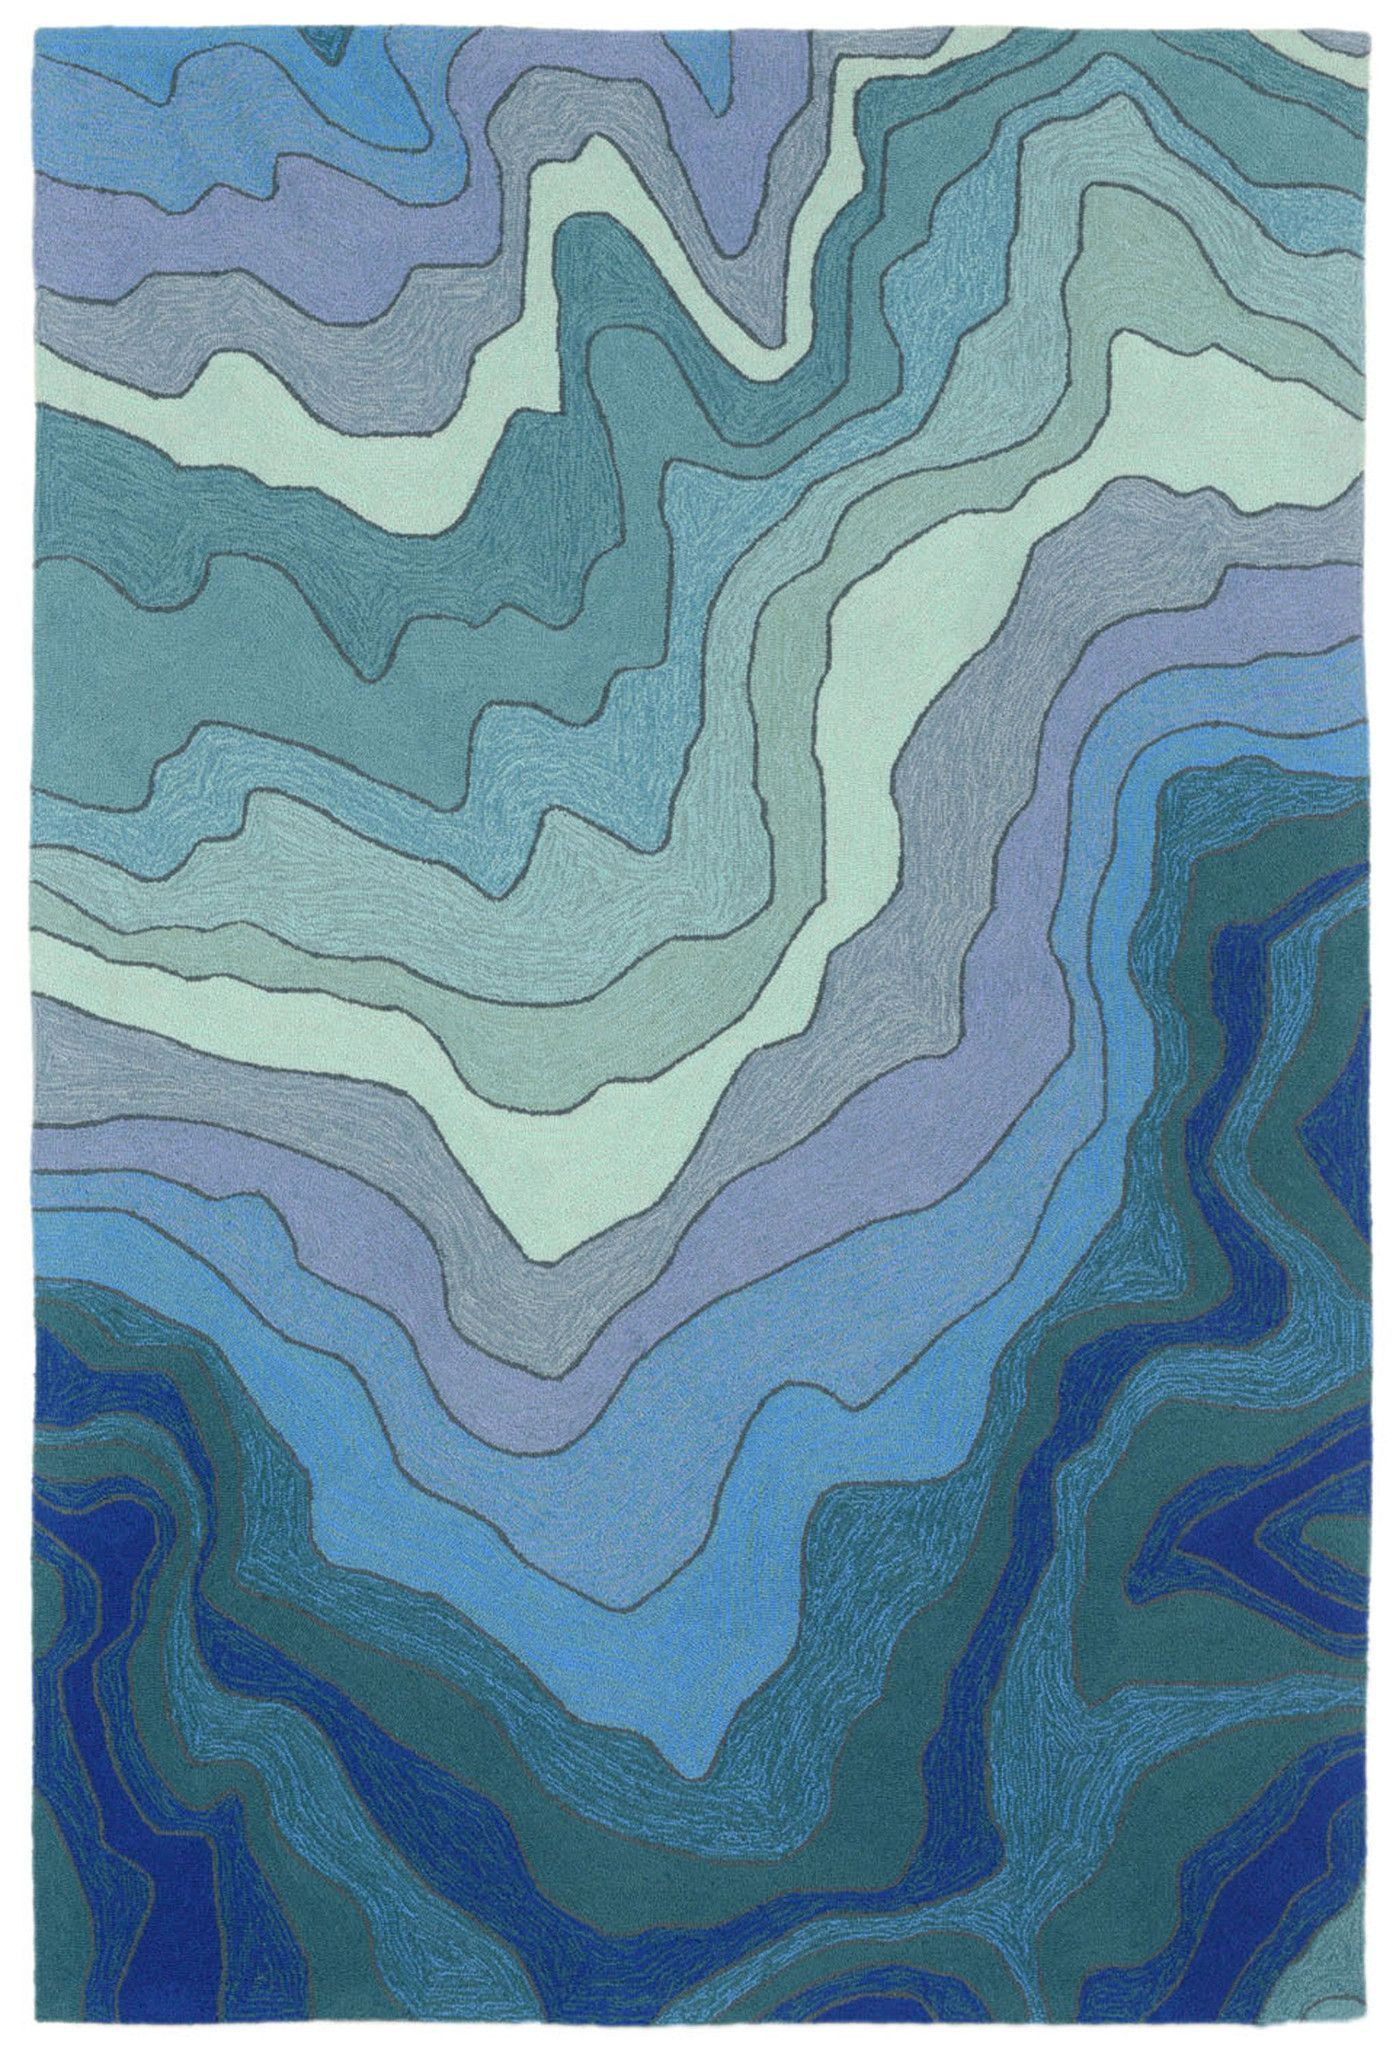 Vandenbosch Hand-Tufted Blue Indoor/outdoor Area Rug with Rhein Accent Mirrors (Image 30 of 30)